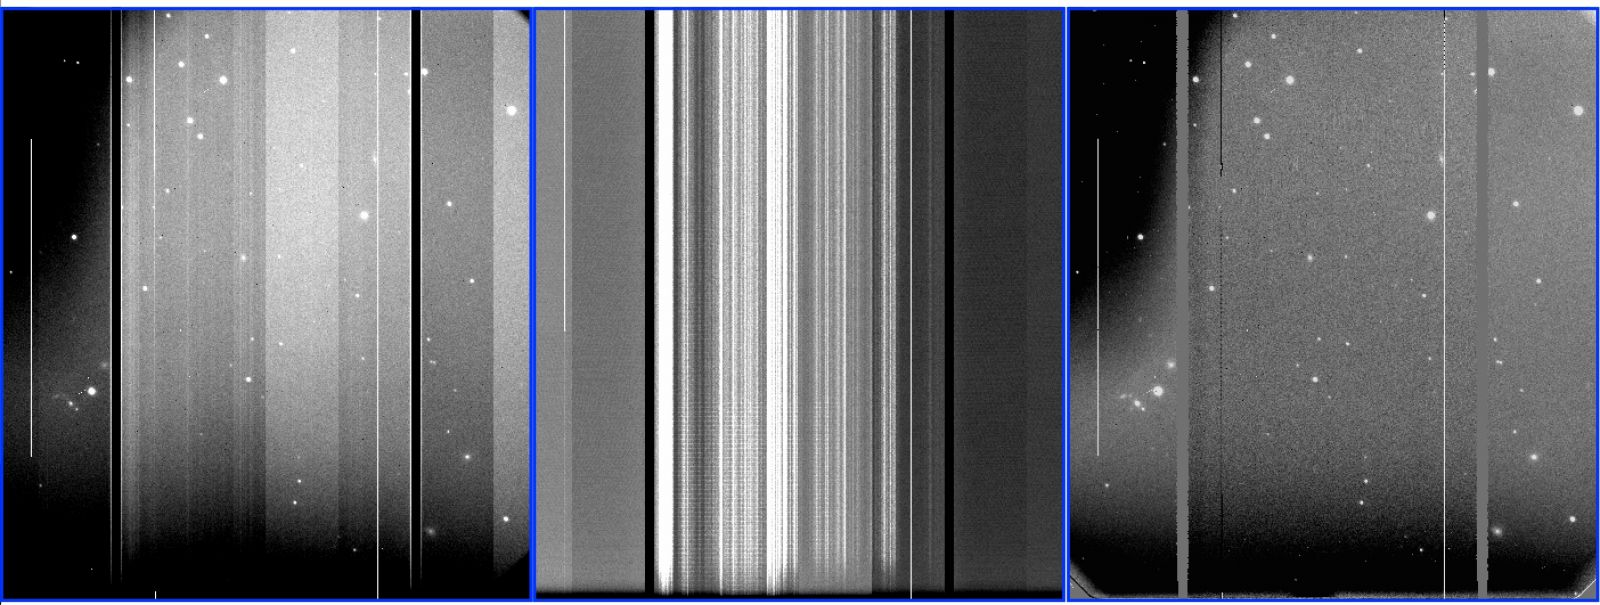 Status And Availability Gemini Observatory Axxess Gmos 04 Install Guide Left S R Band Raw Image Taken On 4 29 18 Middle Bias Pattern In Ccd2 Right Reduced After Applying Subtraction